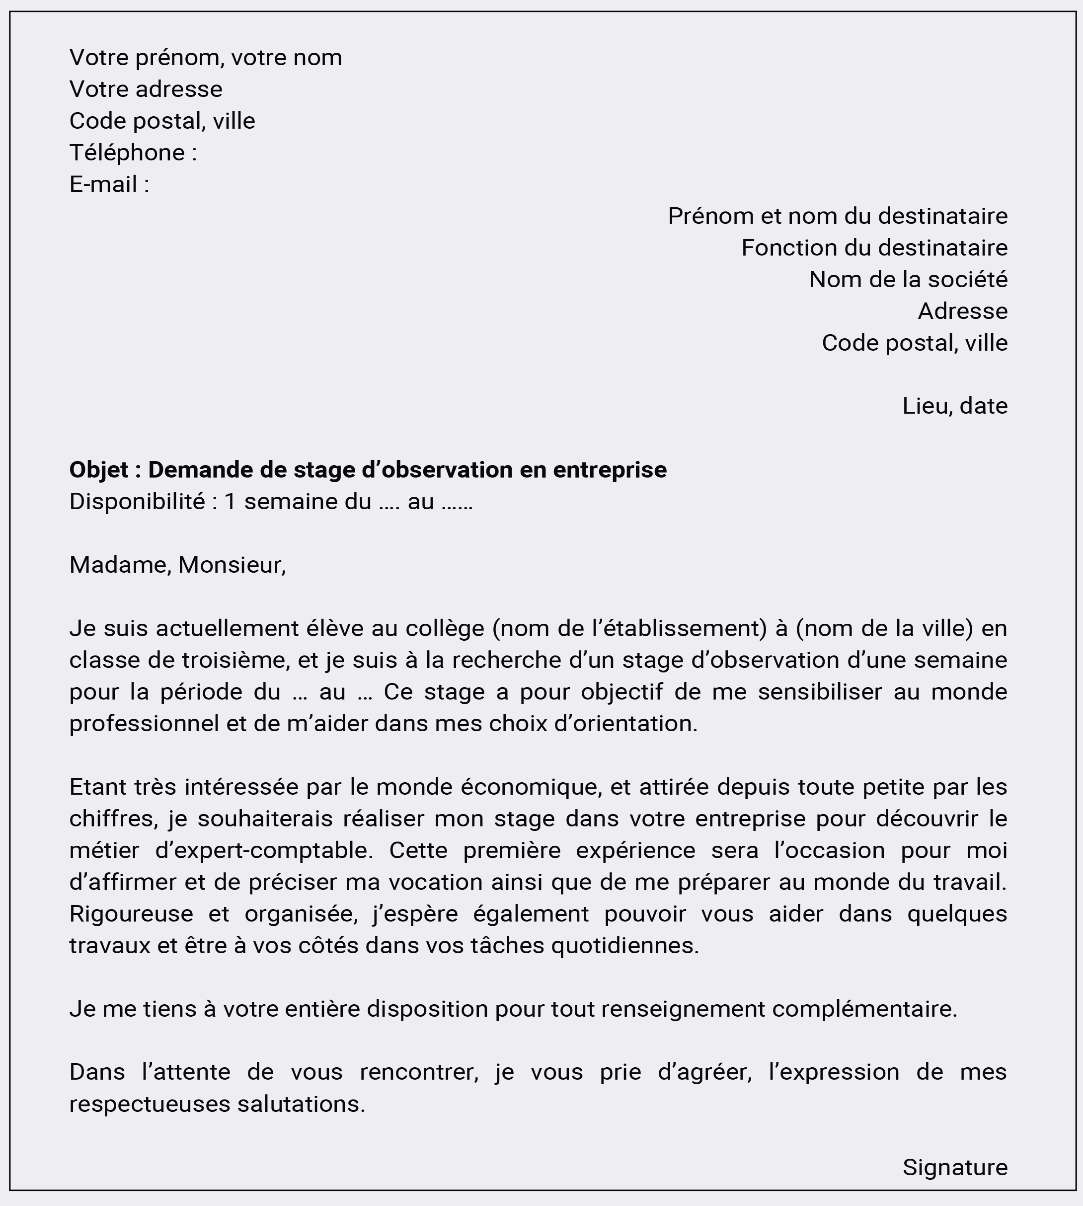 Prestement Prespiote Lettre De Motivation: Lettre De Motivation Disponibilité Immédiate